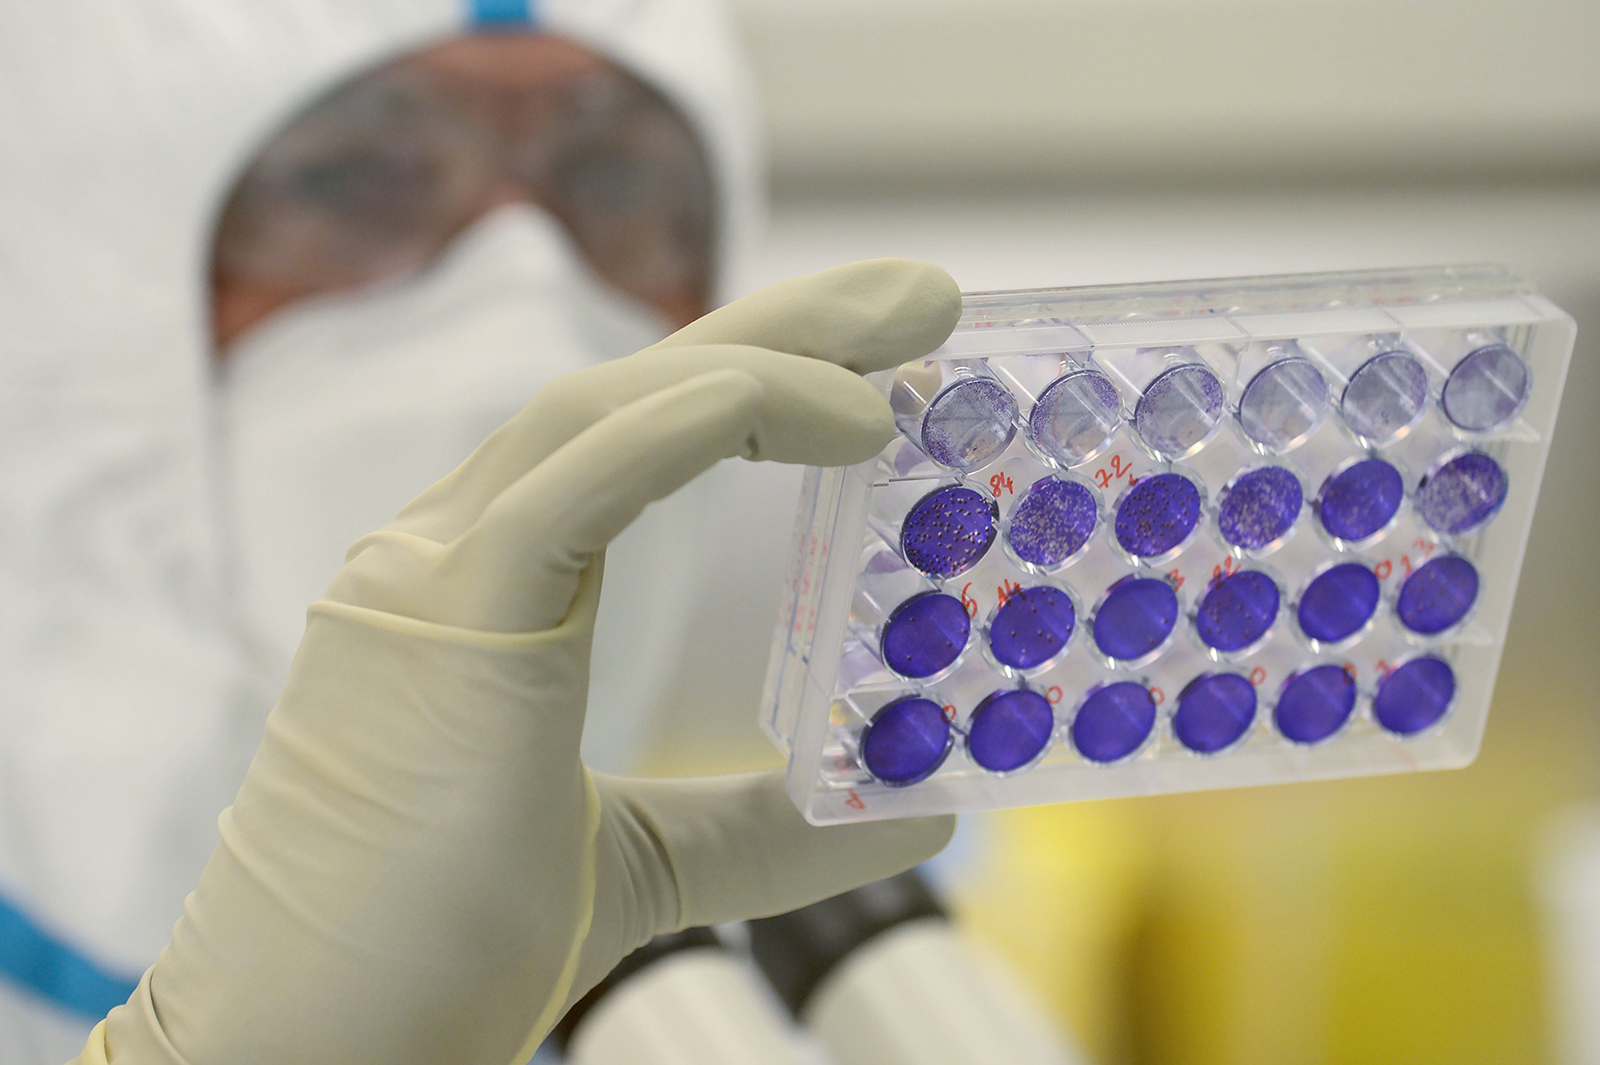 French engineer-virologist Thomas Mollet looks at 24 well plates adherent cells monolayer infected with the Sars-CoV-2 virus at the Valneva SE Group headquarters in Saint-Herblain, France, on July 30.